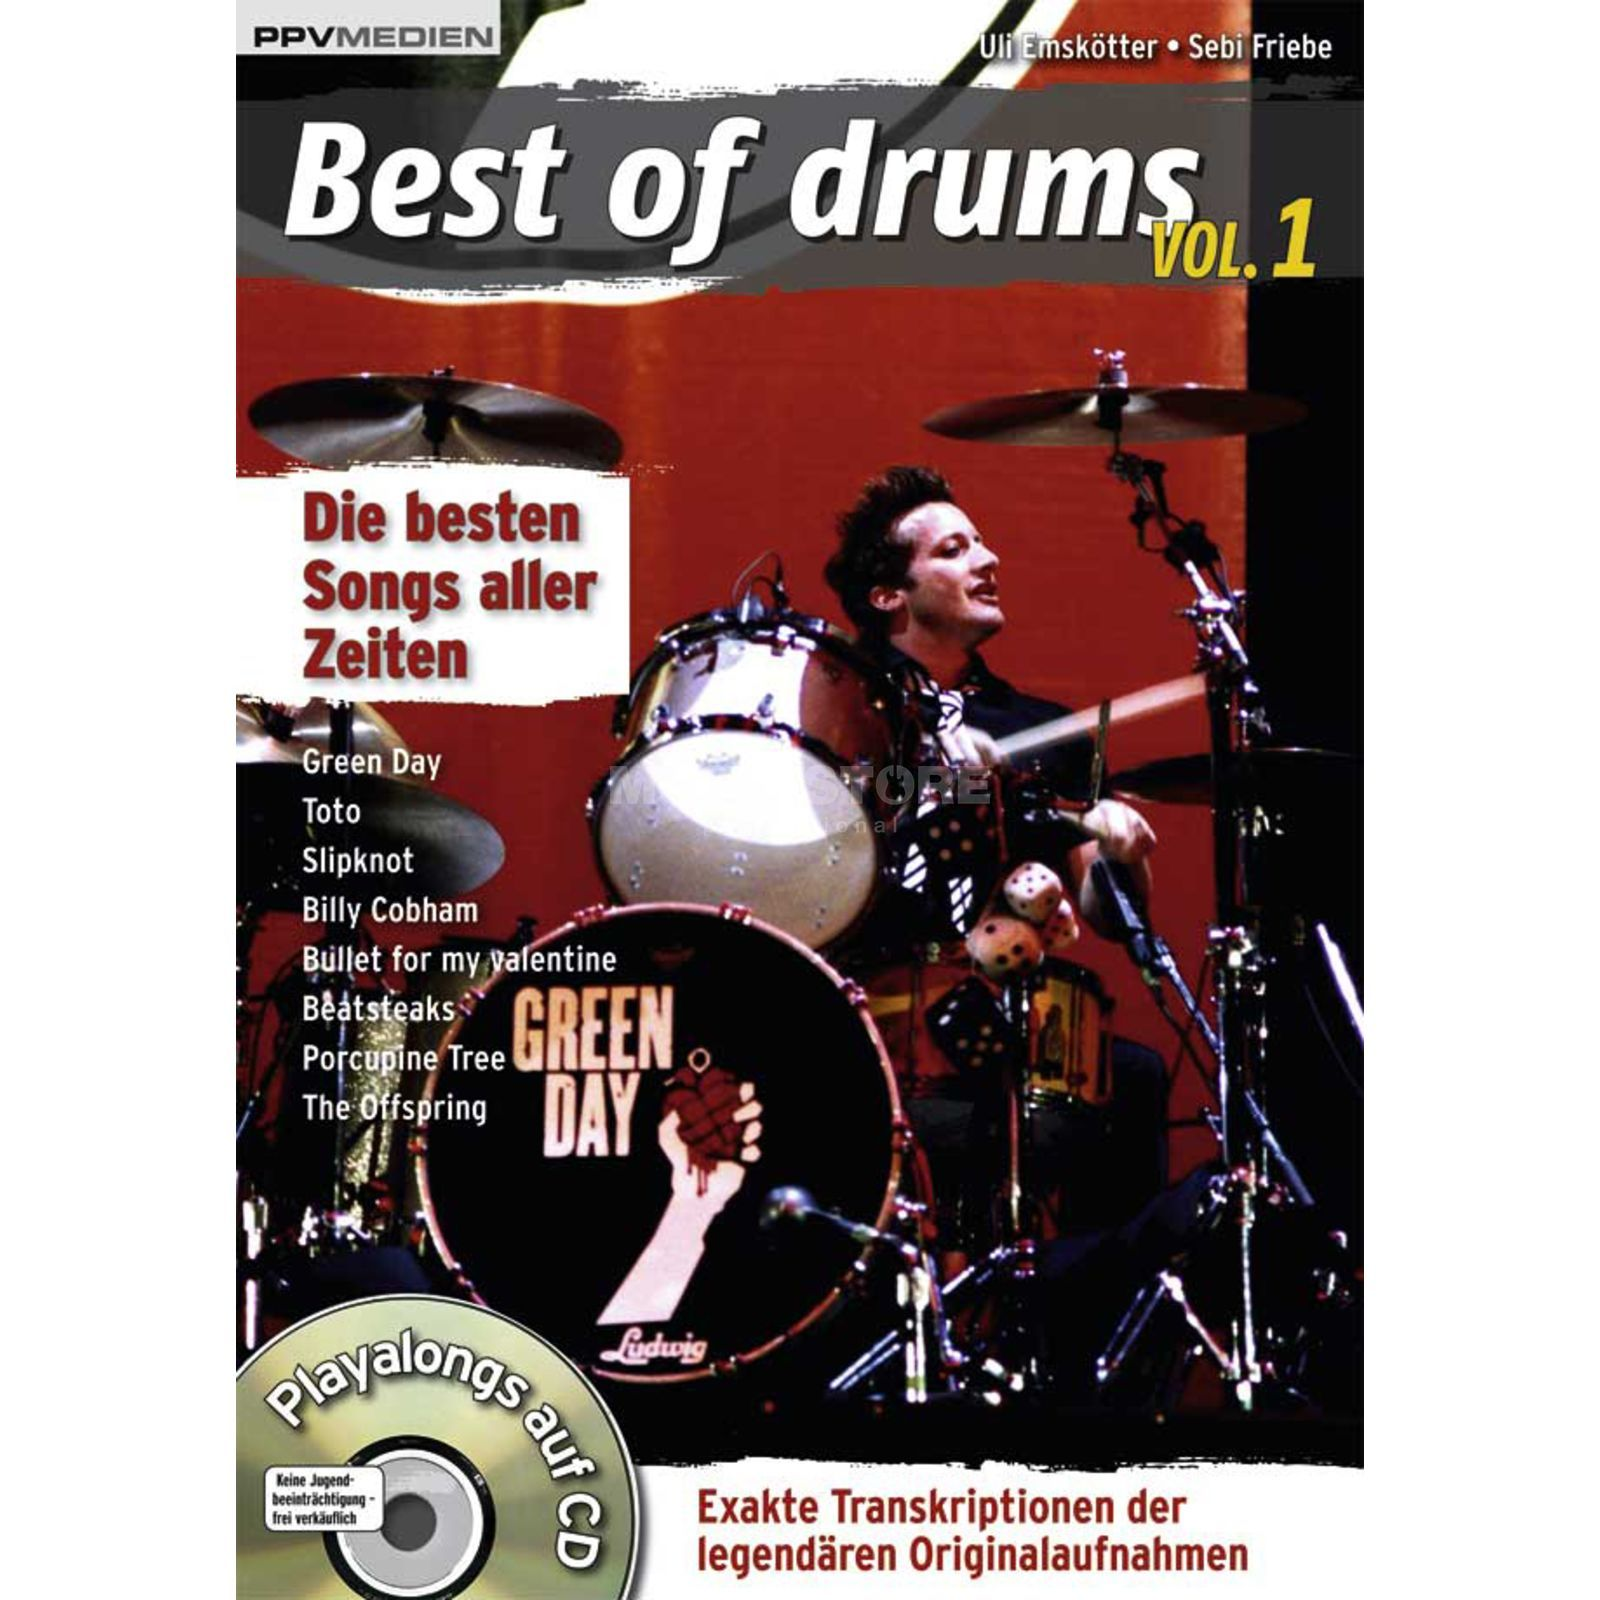 PPV Medien Best of drumheads!! Vol. 1 Playalong und Transkriptionen Produktbild